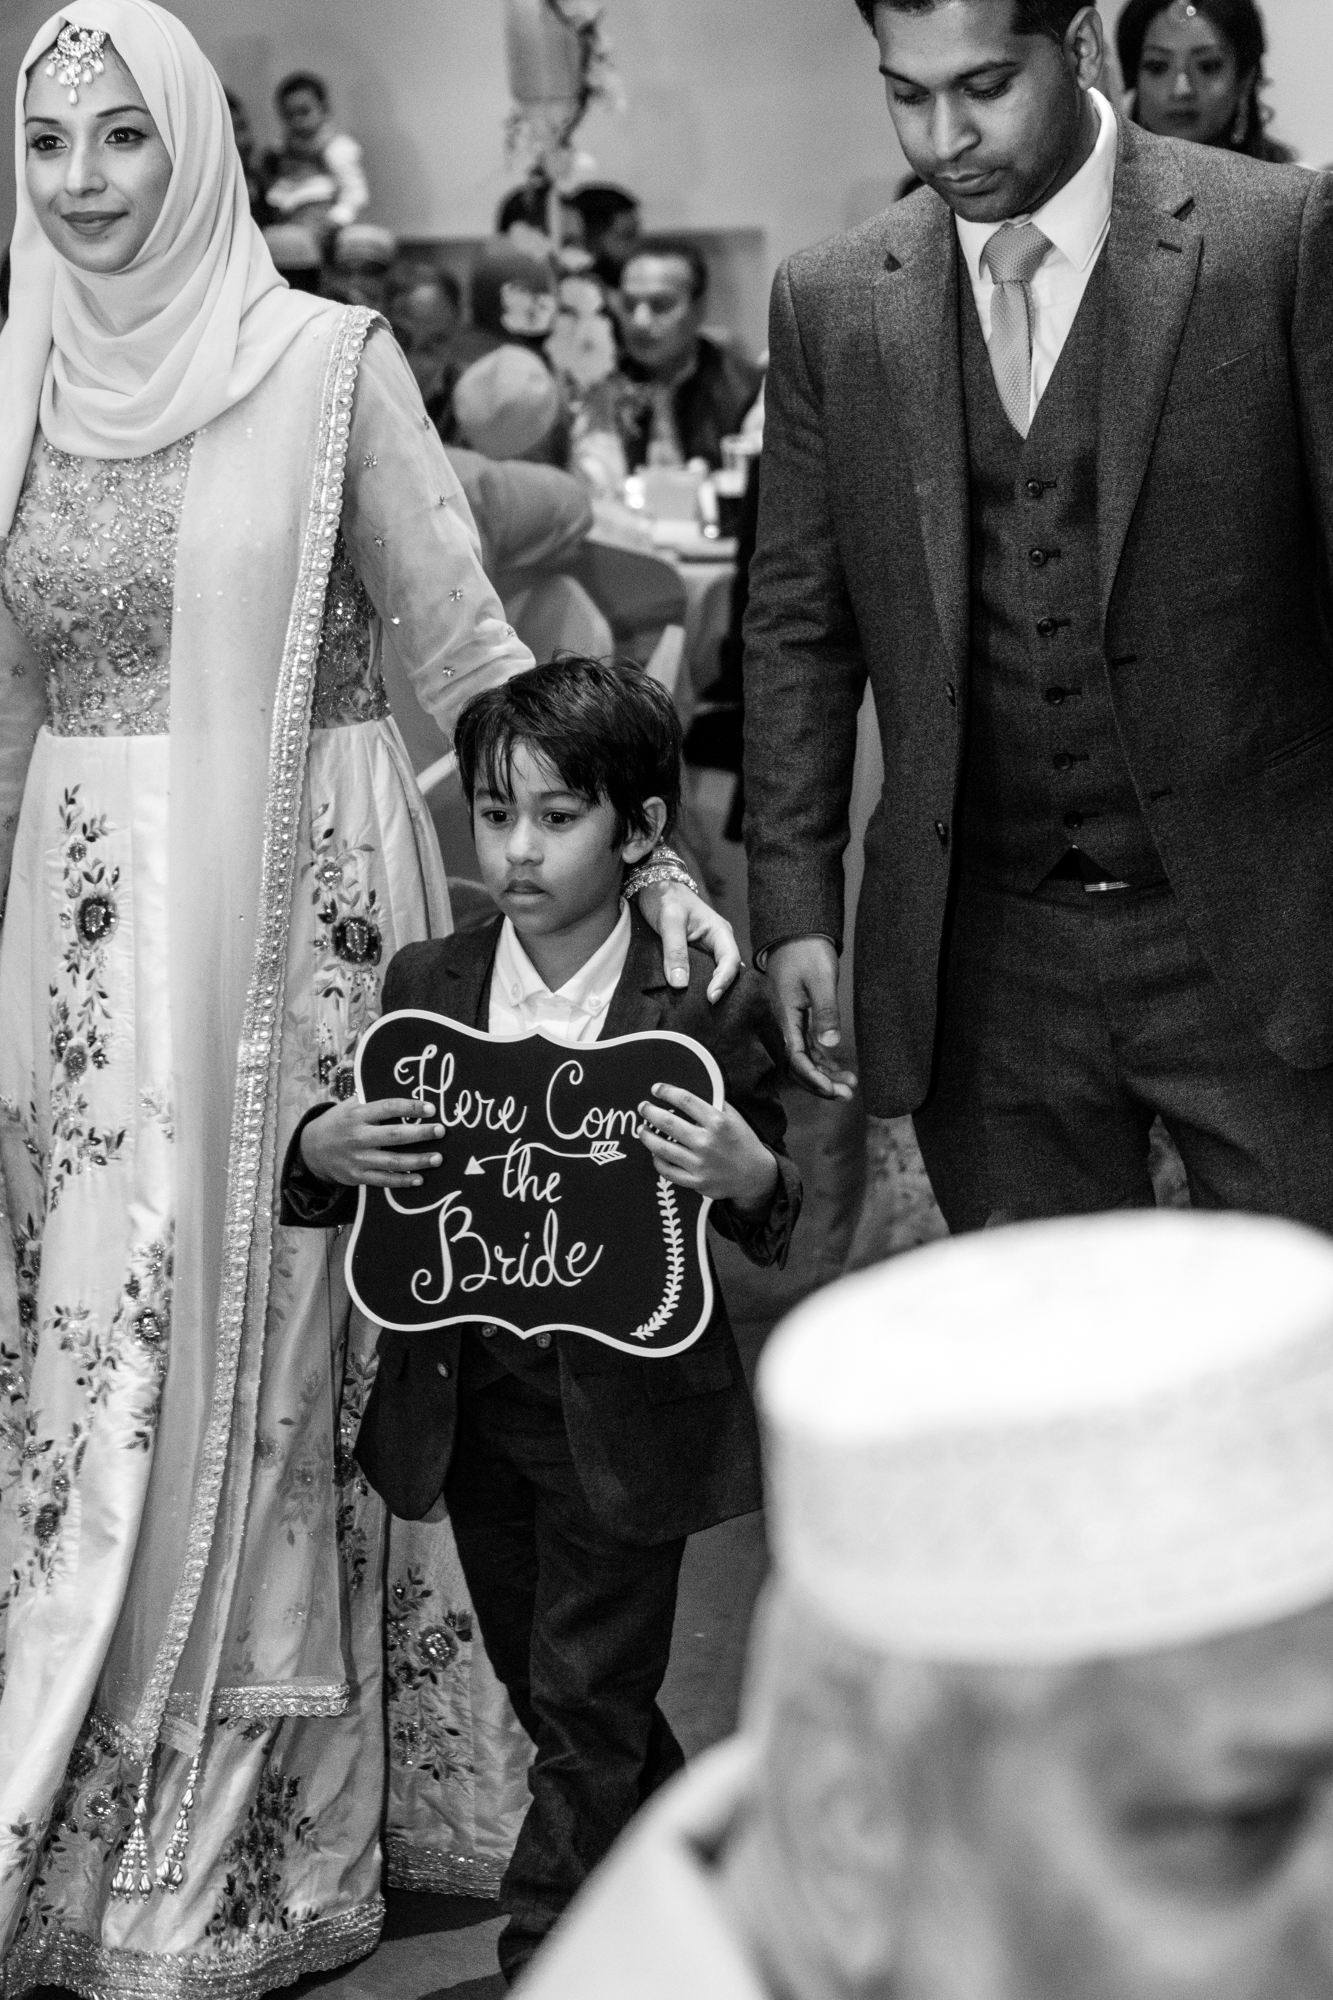 a young boy escorts the bride up the aisle with a blackboard in his hands